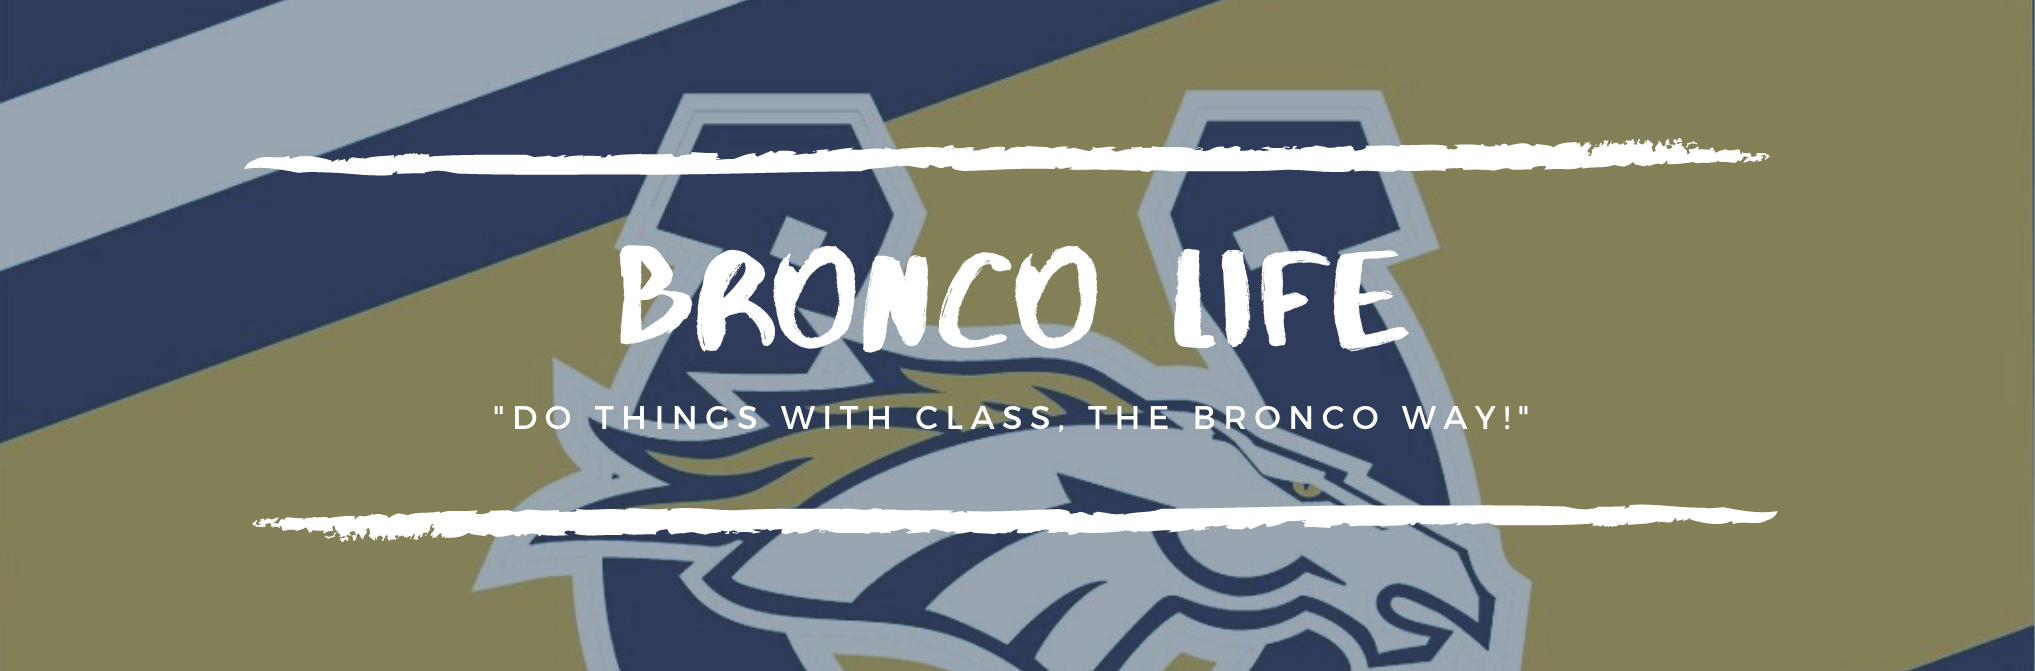 Bronco Life button